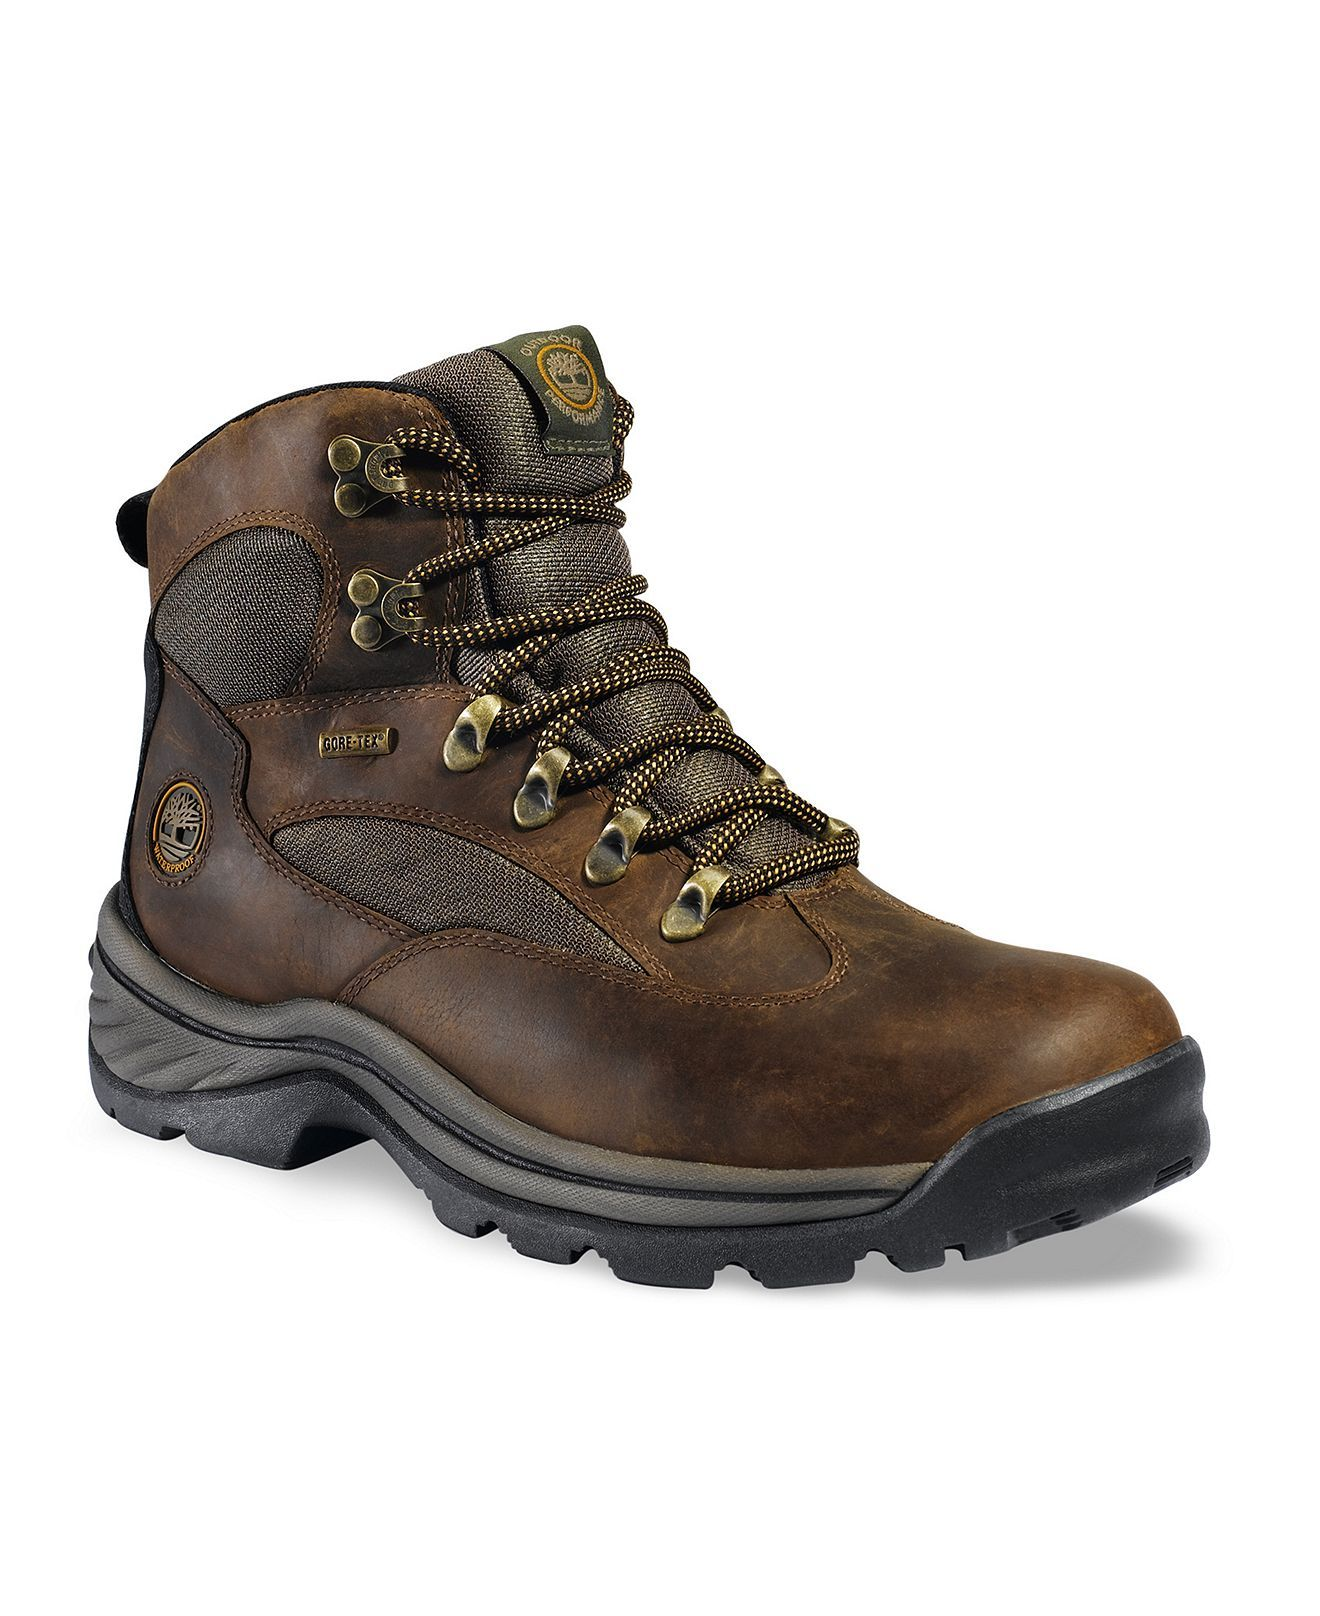 814eeaae4 Timberland Boots, Waterproof Chocorua Trail Gore-Tex Hiker...Great boot,  would highly recommend!!